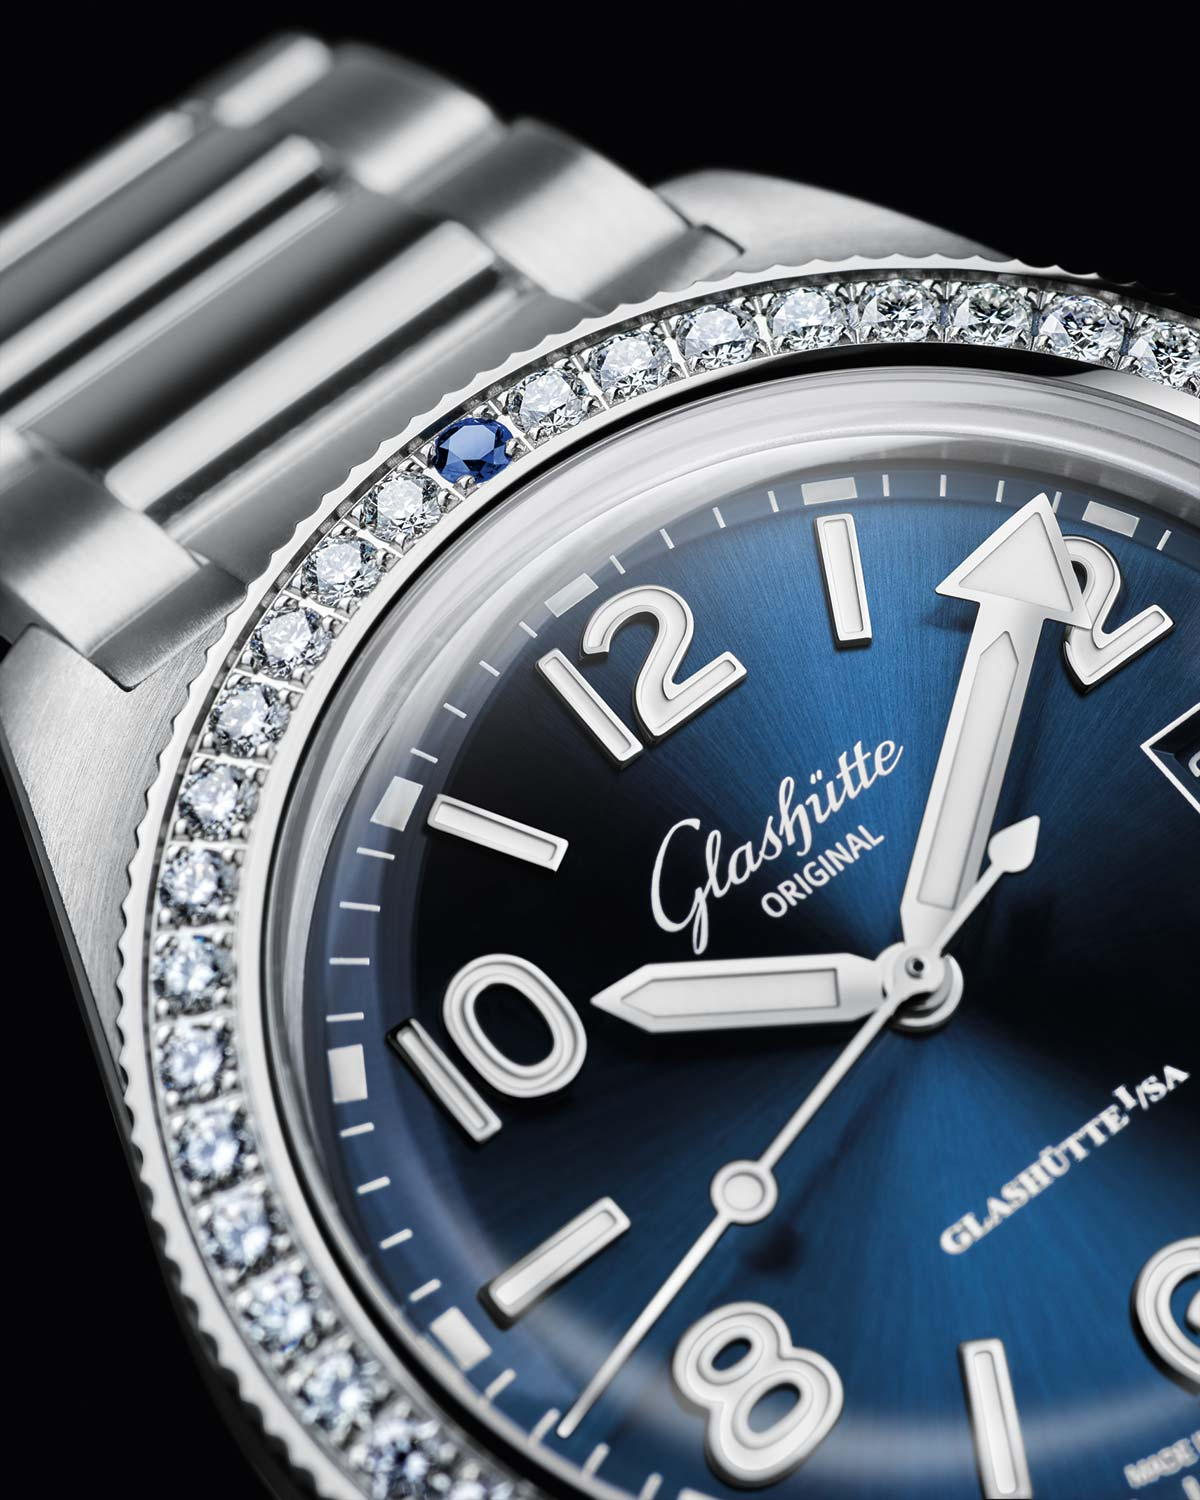 INTRODUCING: The Glashütte Original SeaQ – a 39.5mm dive watch with a diamond bezel? Sorry, what?